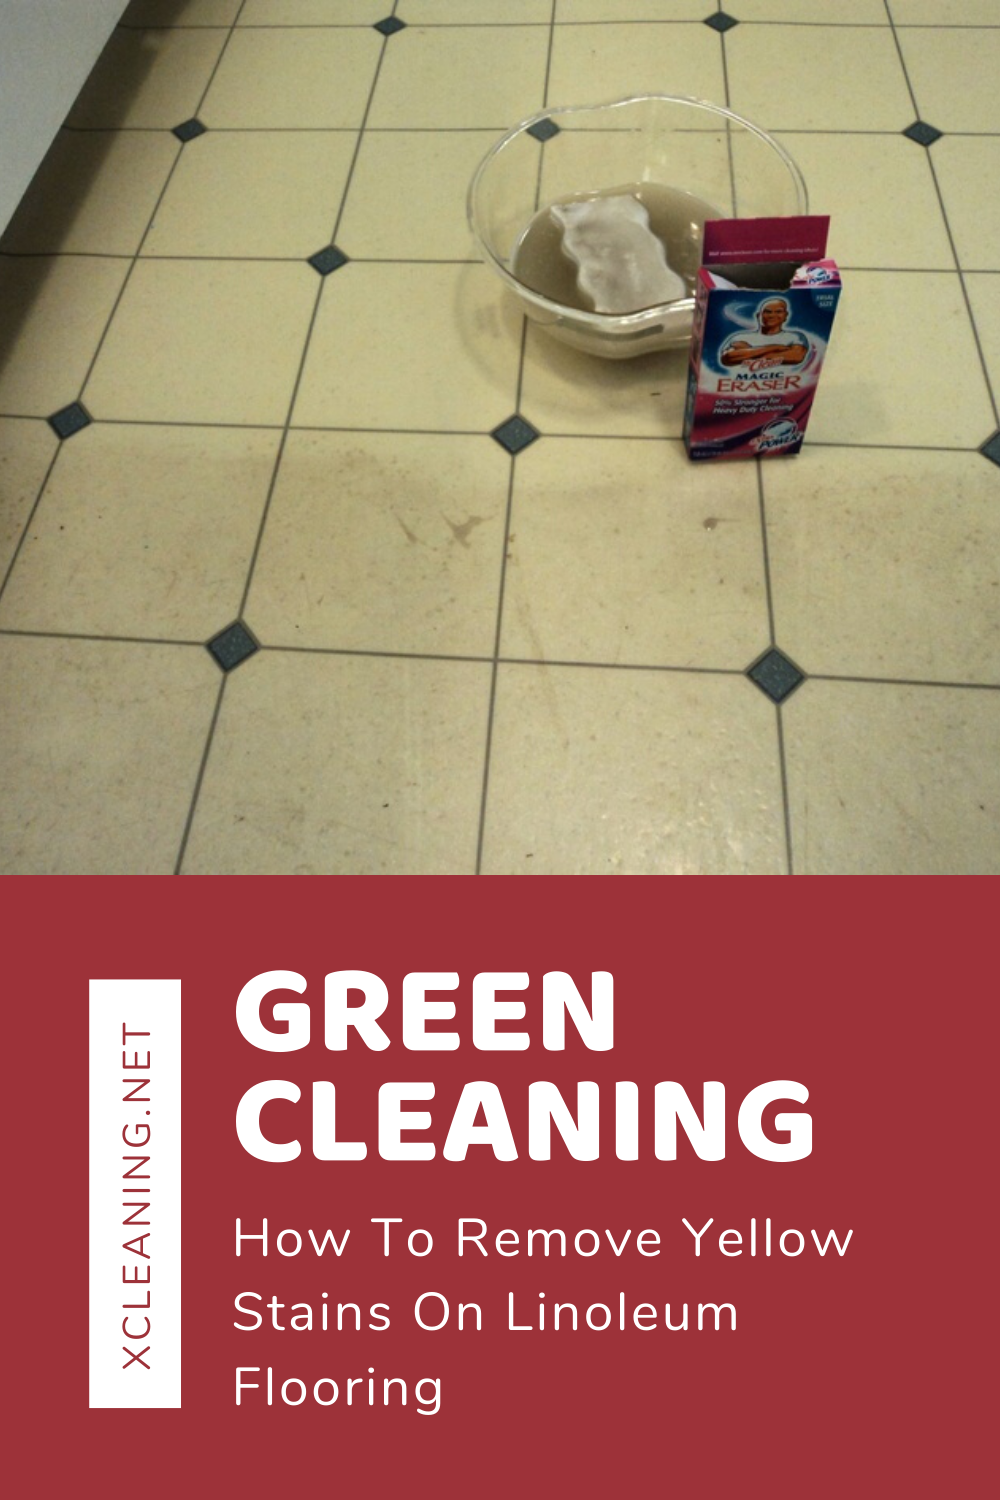 Green Cleaning: How To Remove Yellow Stains On Linoleum Flooring